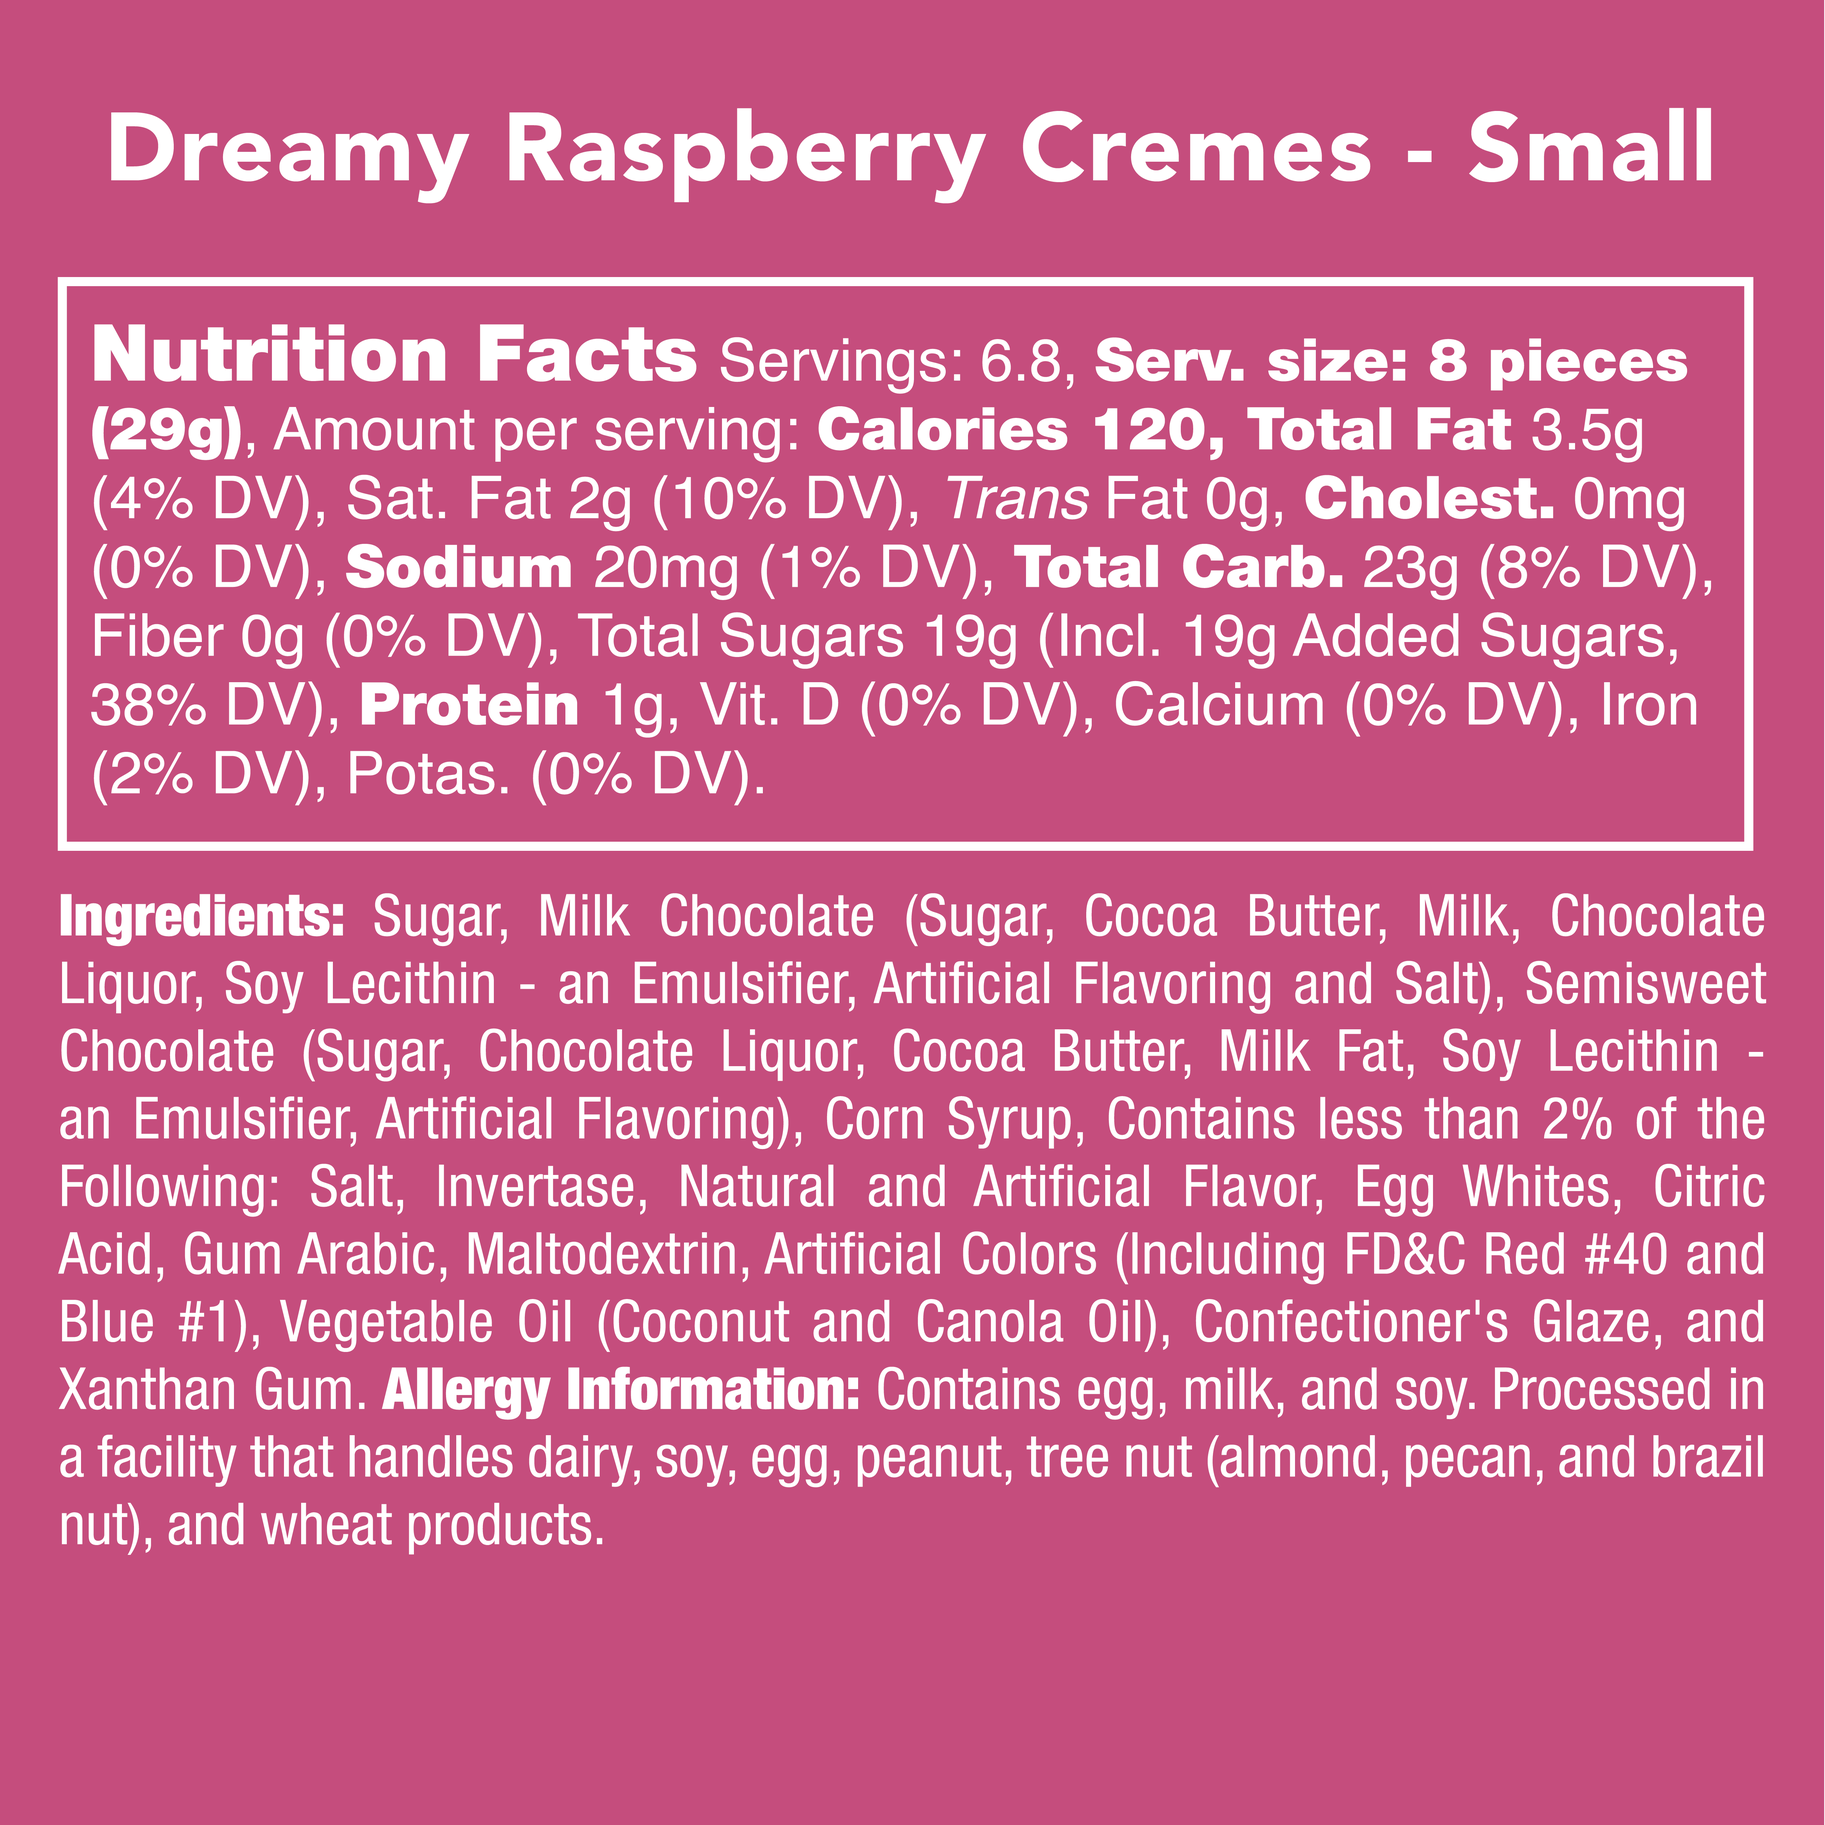 Candy Club Dreamy Raspberry Cremes